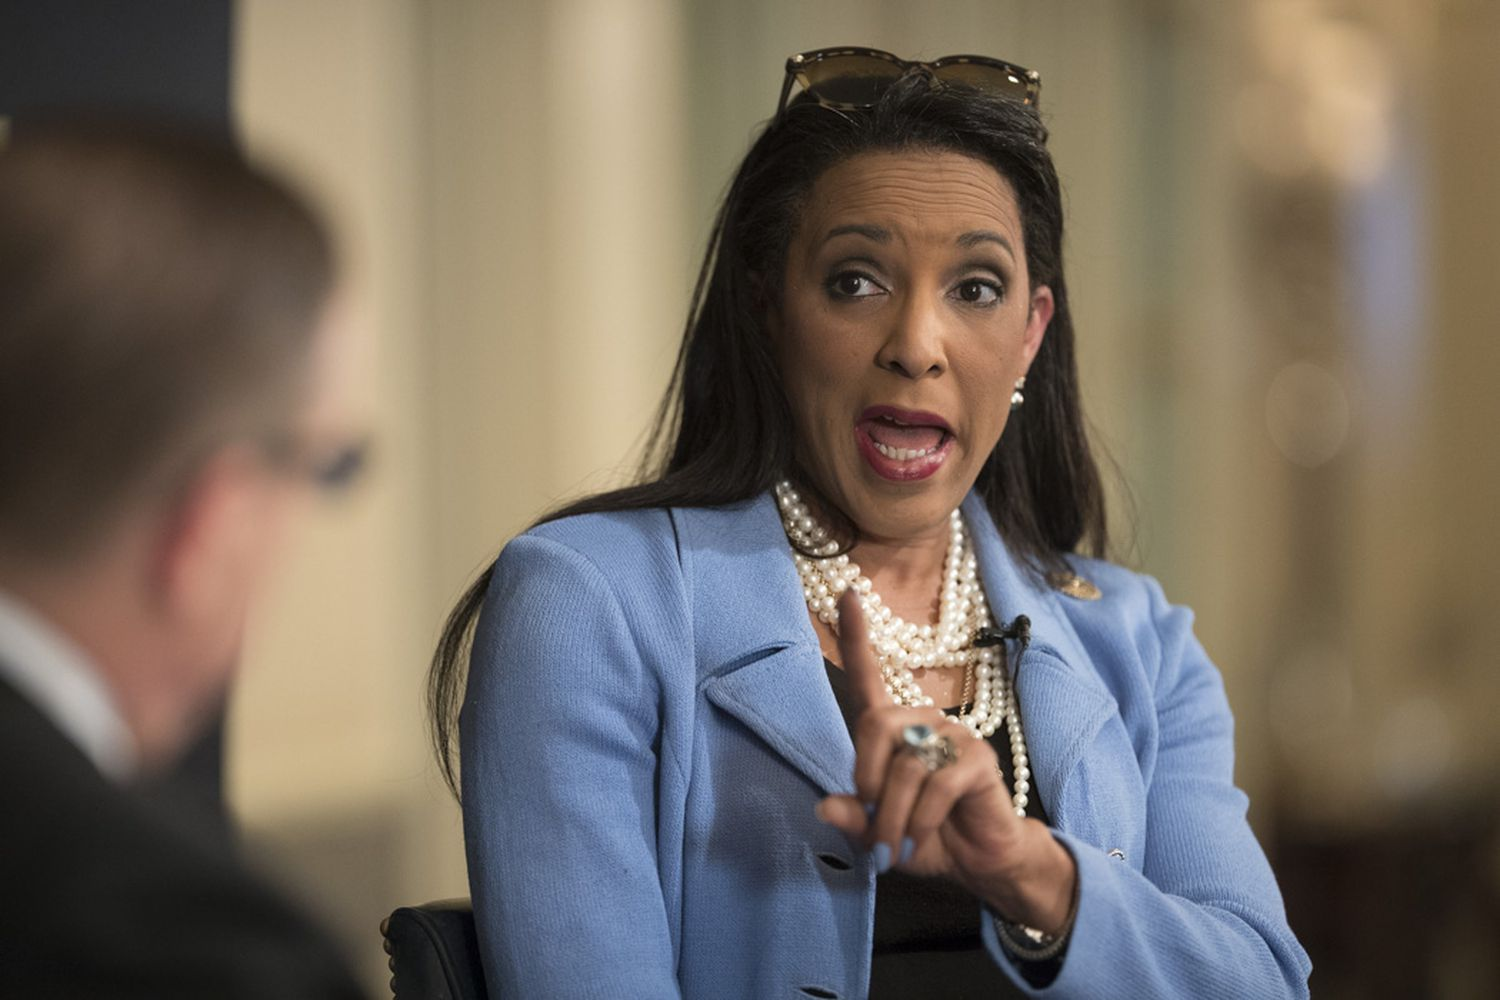 State Rep. Dawnna Dukes, D-Austin, says she's healthy enough to serve another term in the Texas House during a conversation on Nov. 7, 2017 at the Austin Club.